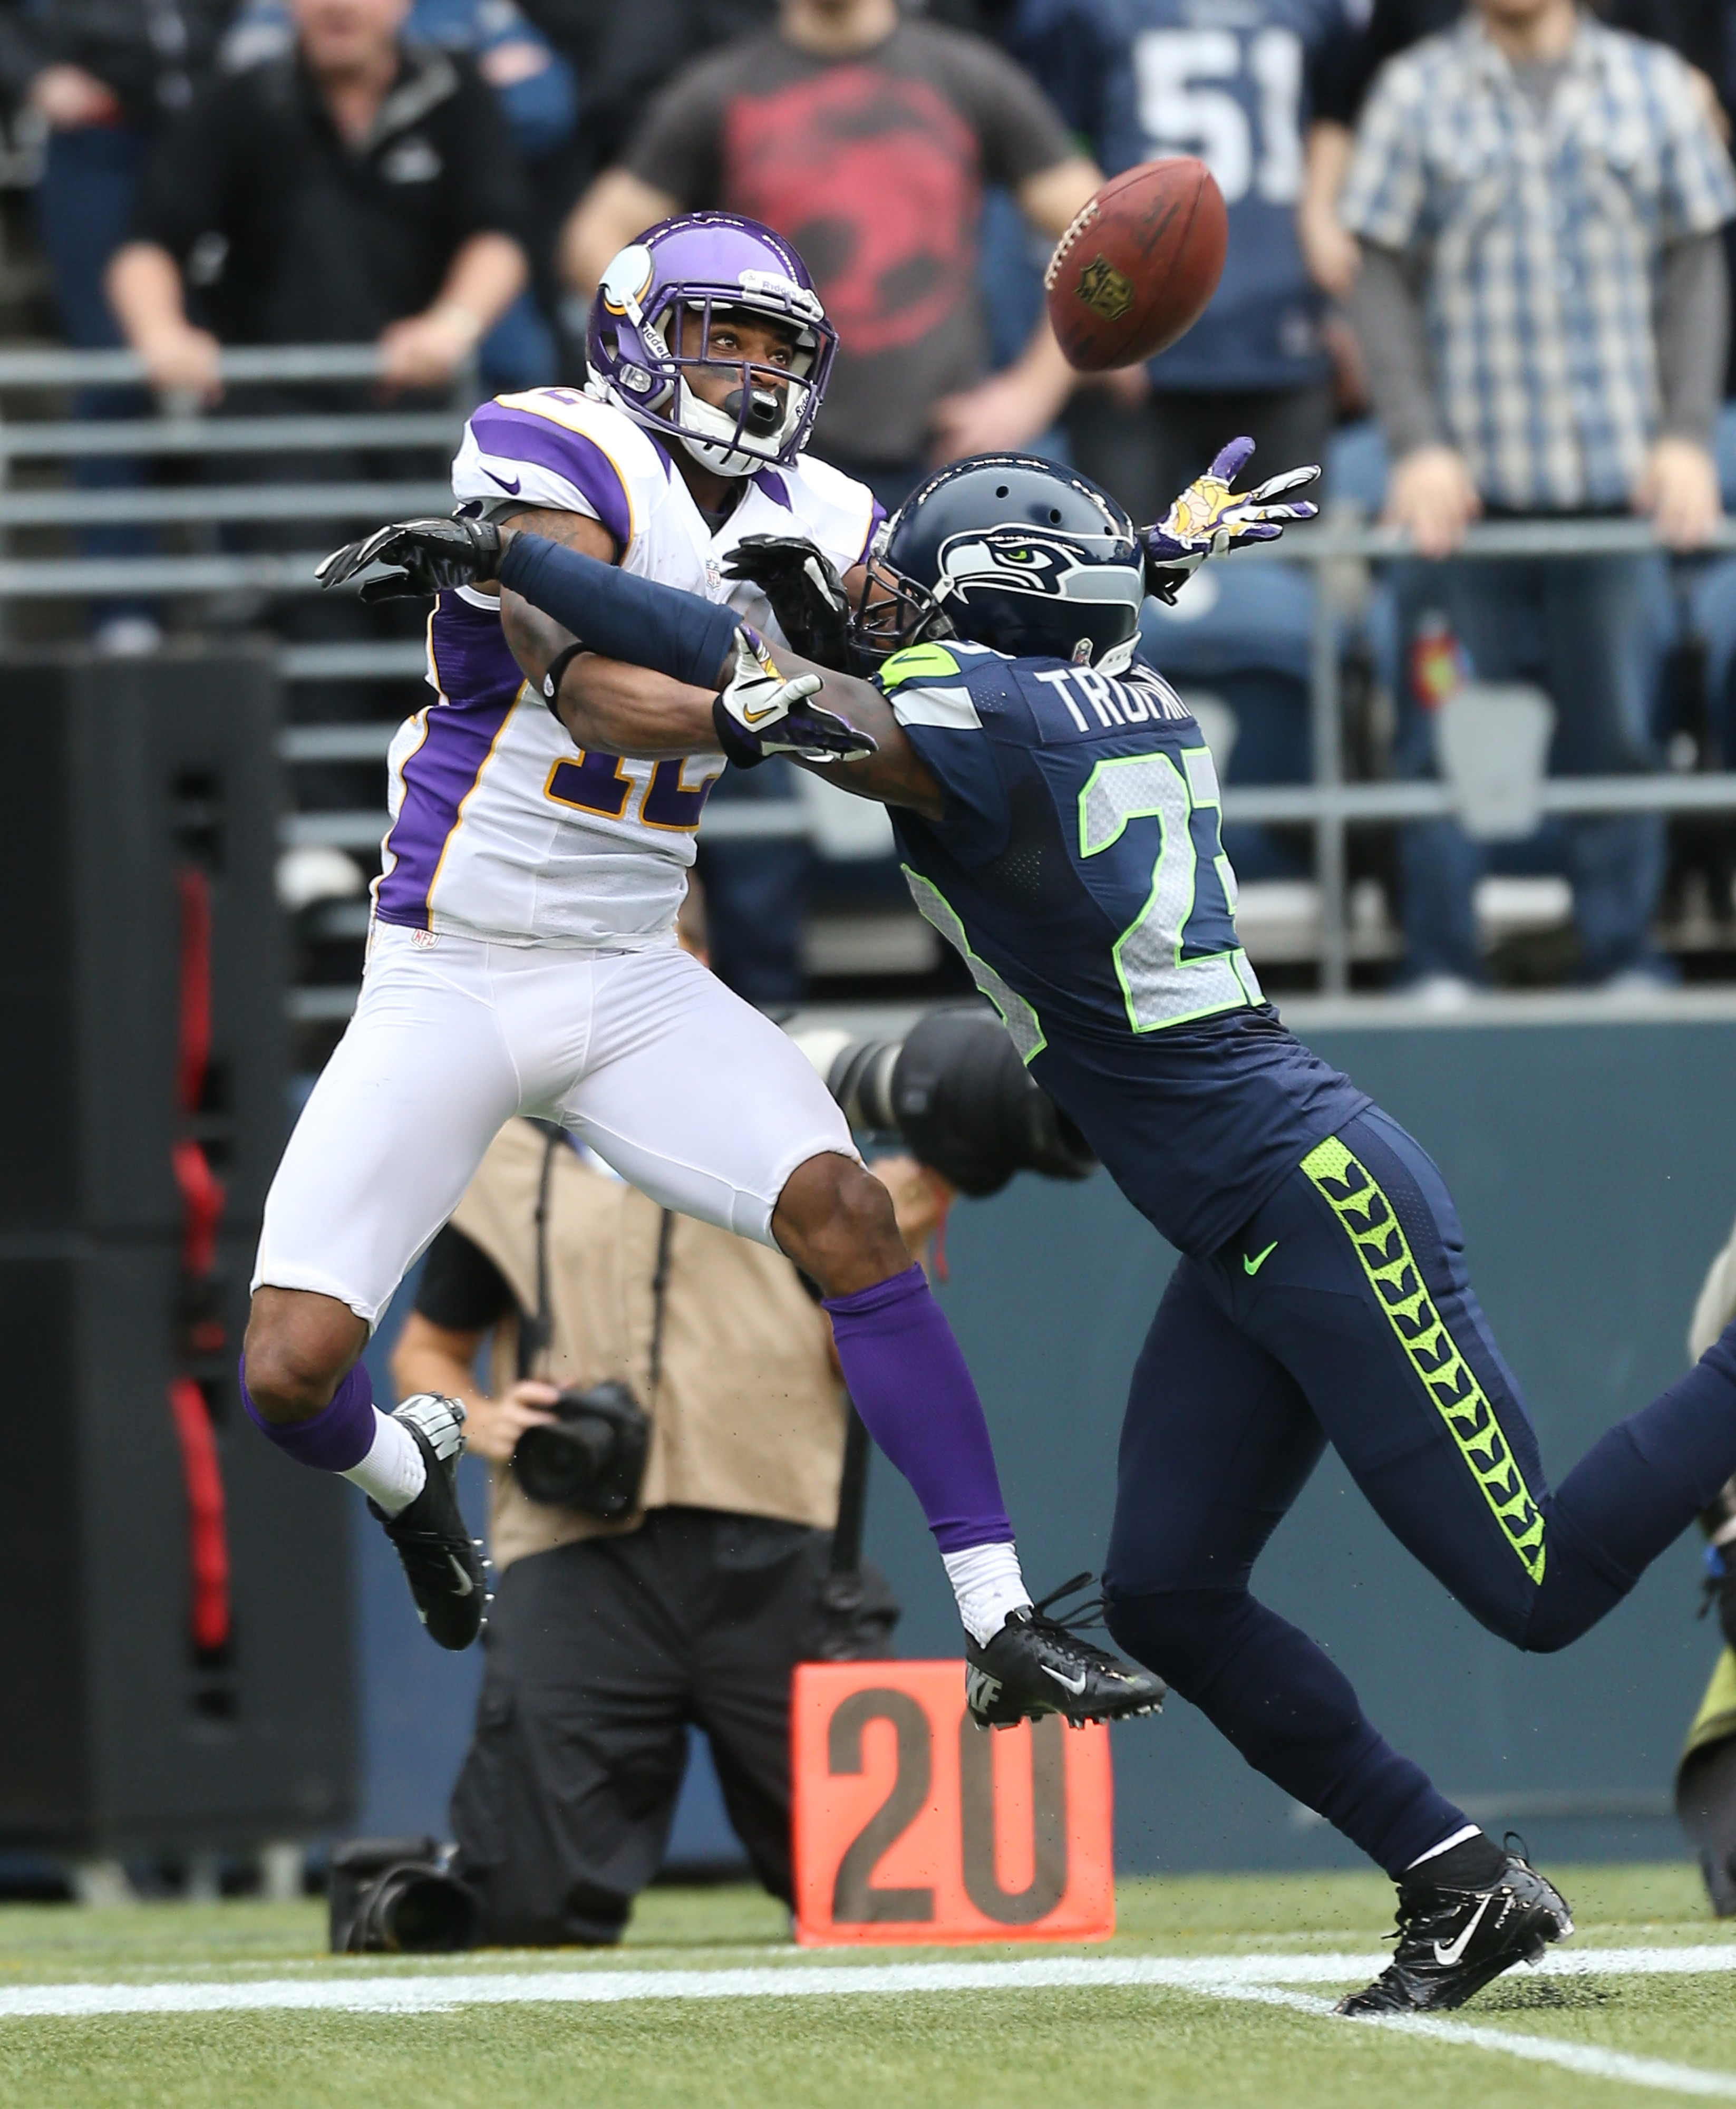 Percy Harvin impressed with fellow Seahawks receivers